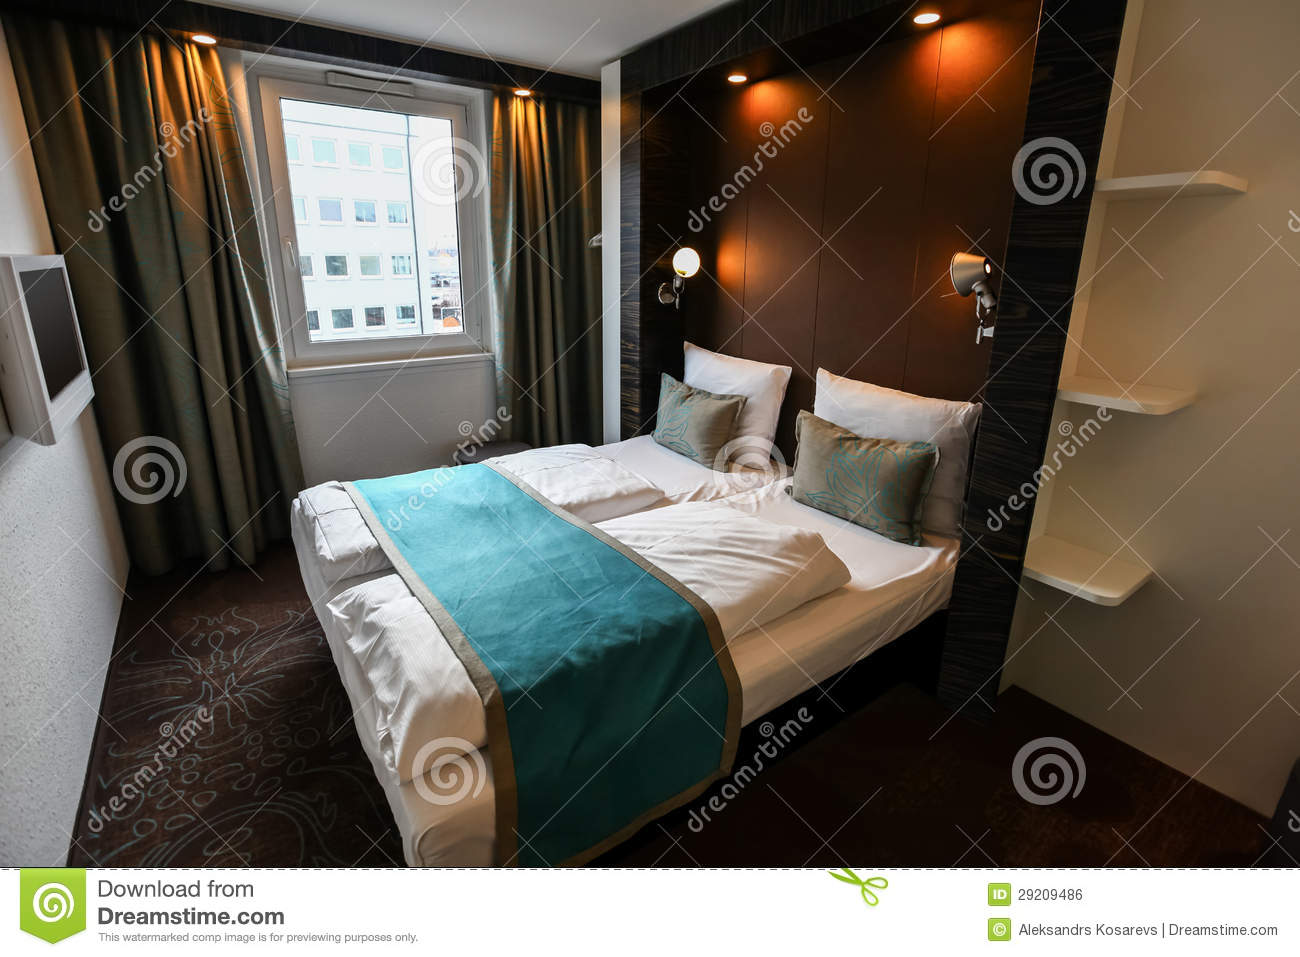 Modern hotel room interior stock photo image 18197840 - Bed Double Flat Hotel Interior Luxury Modern Room